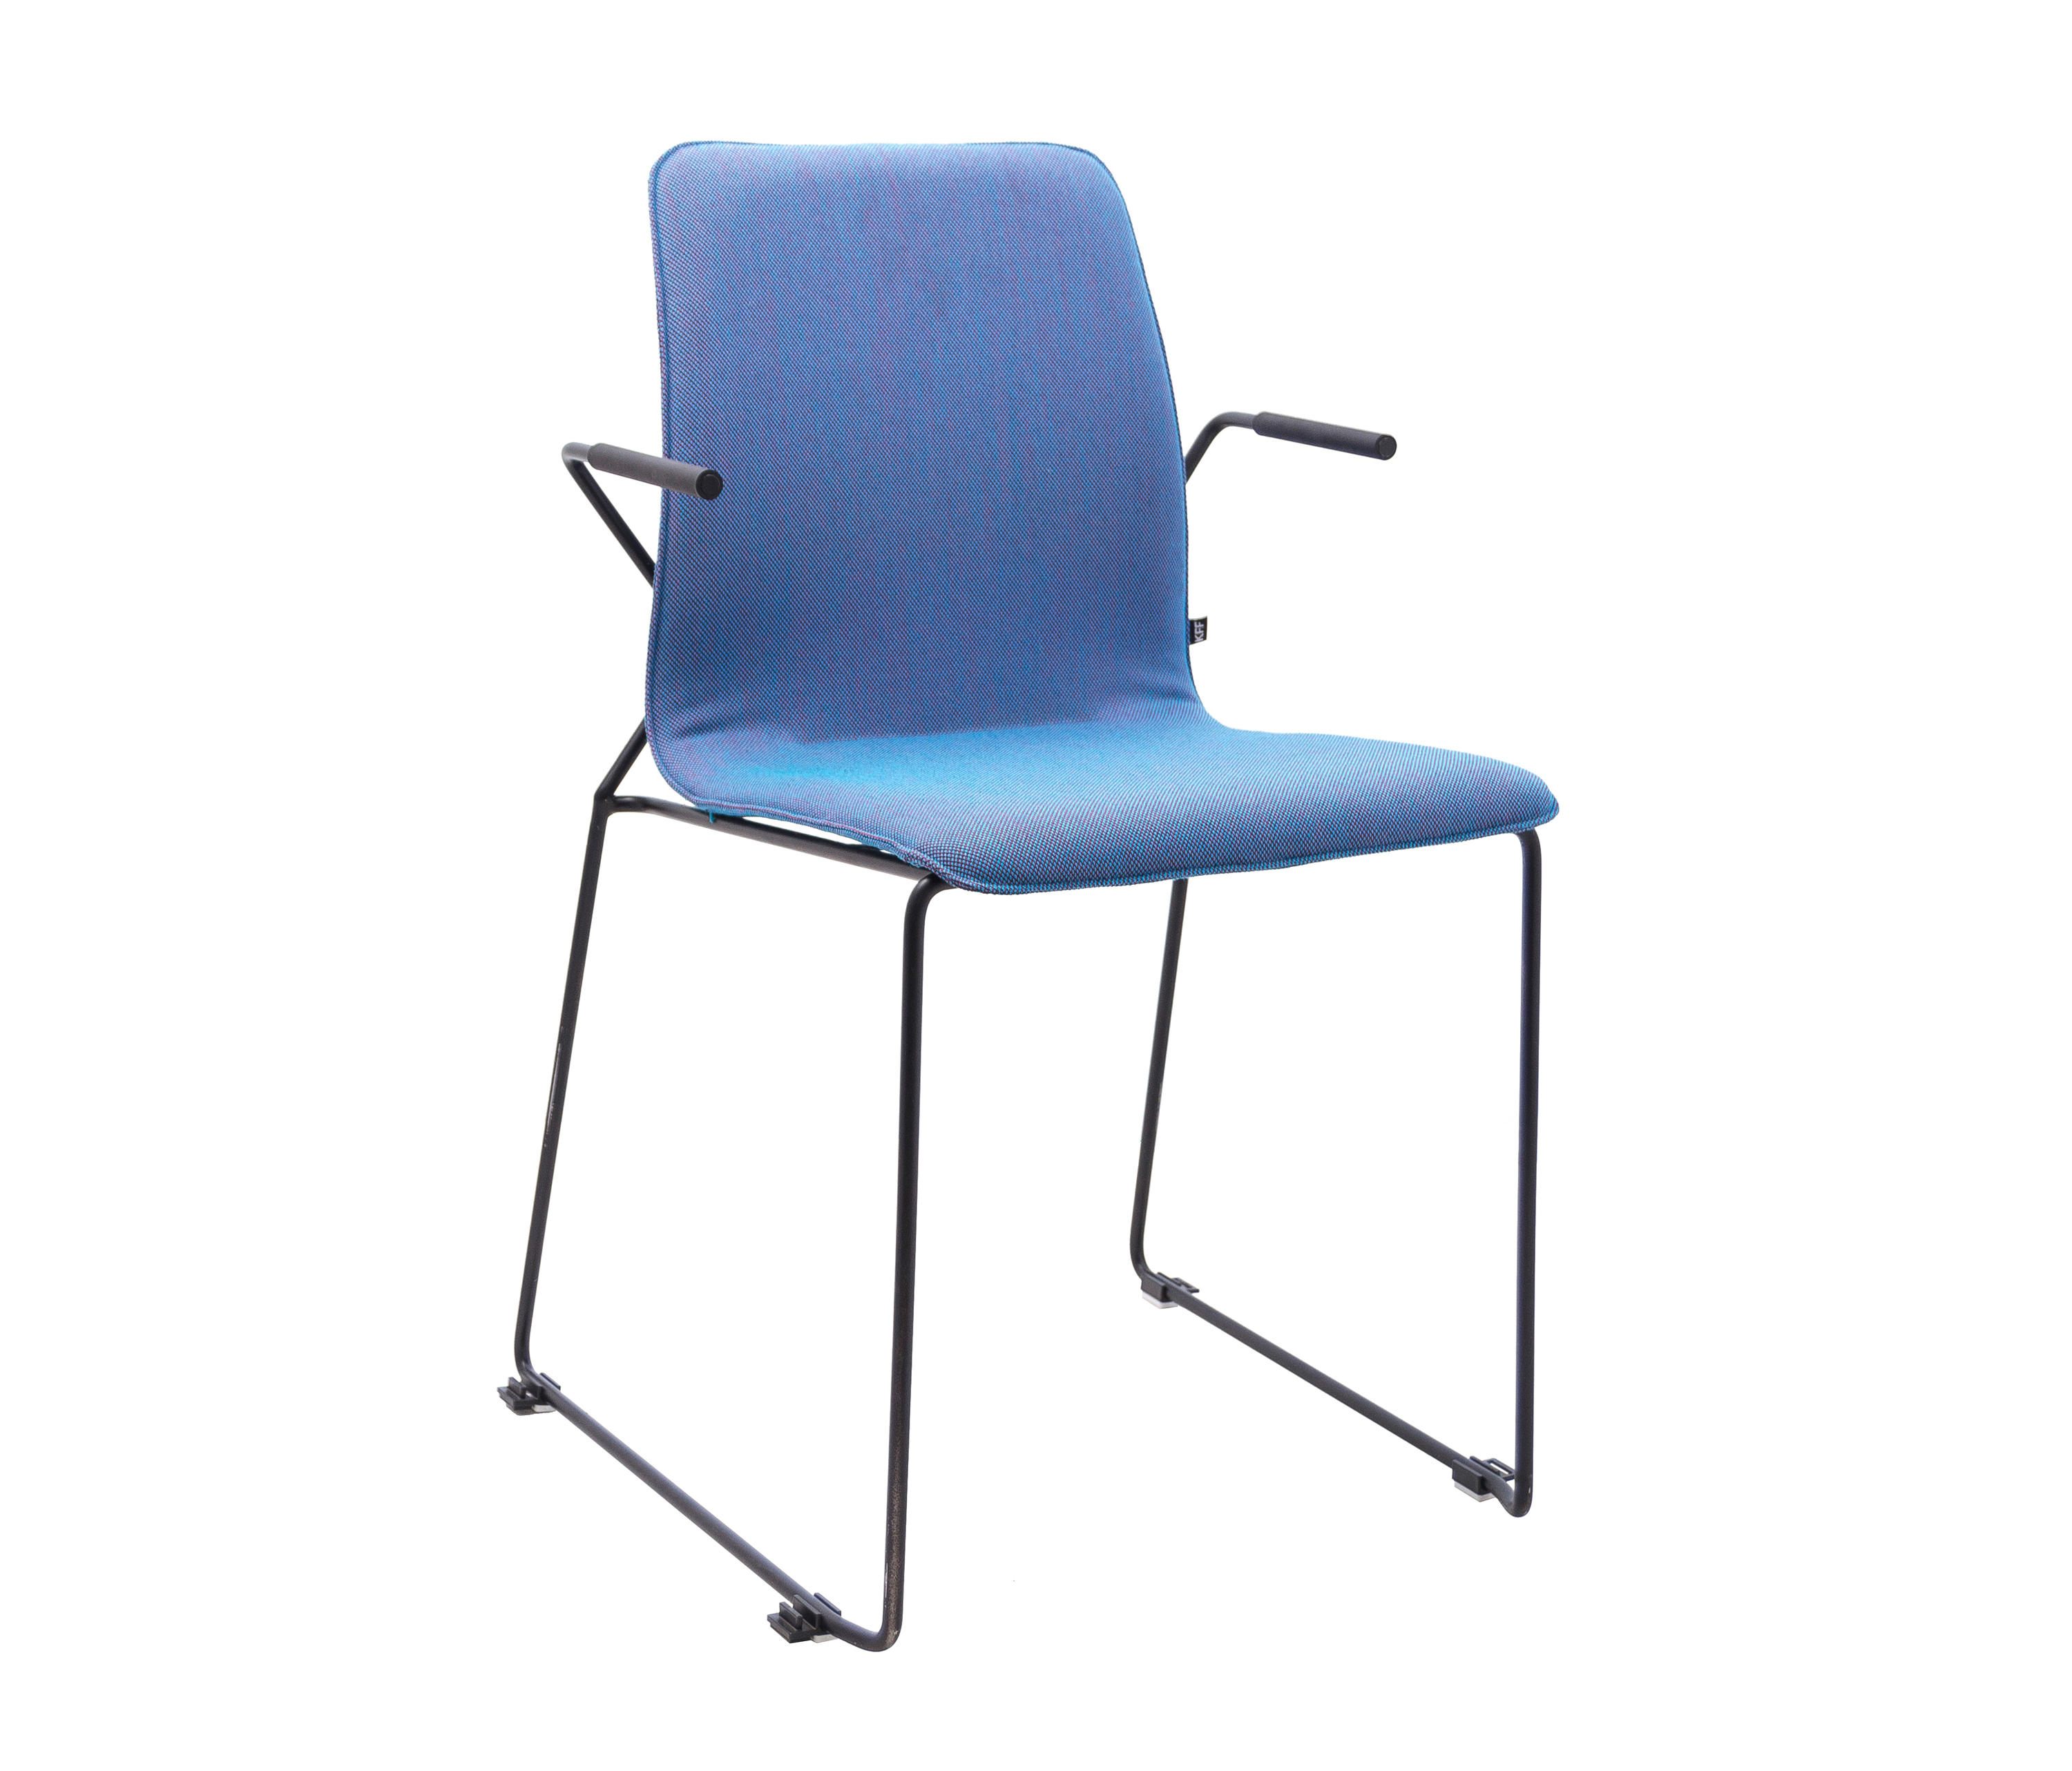 X Act Contract Chair Chairs From Kff Architonic